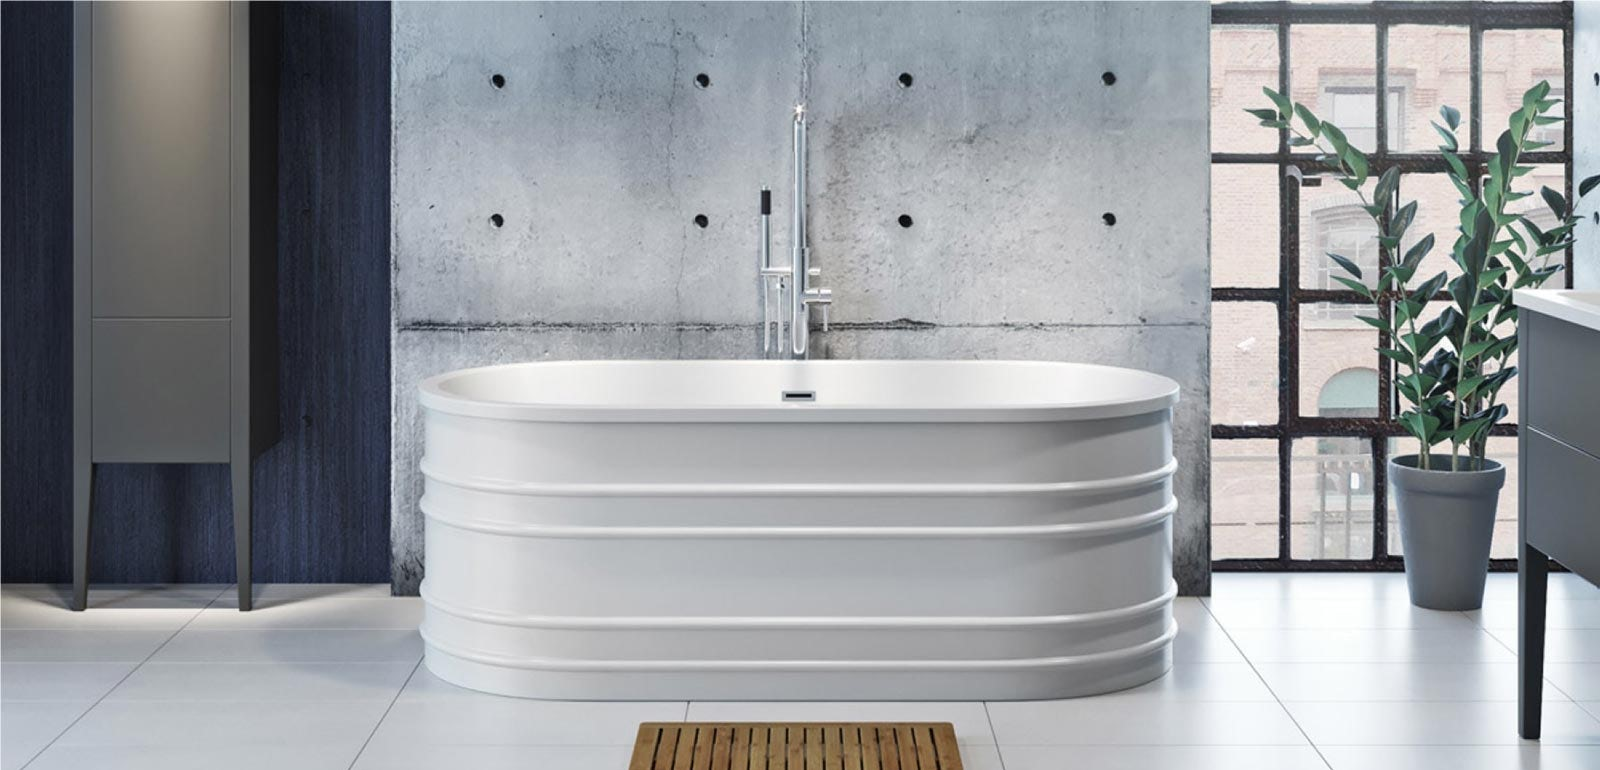 15 brrr-illiant bathroom products—Stylist's Selection winter 2019/2020